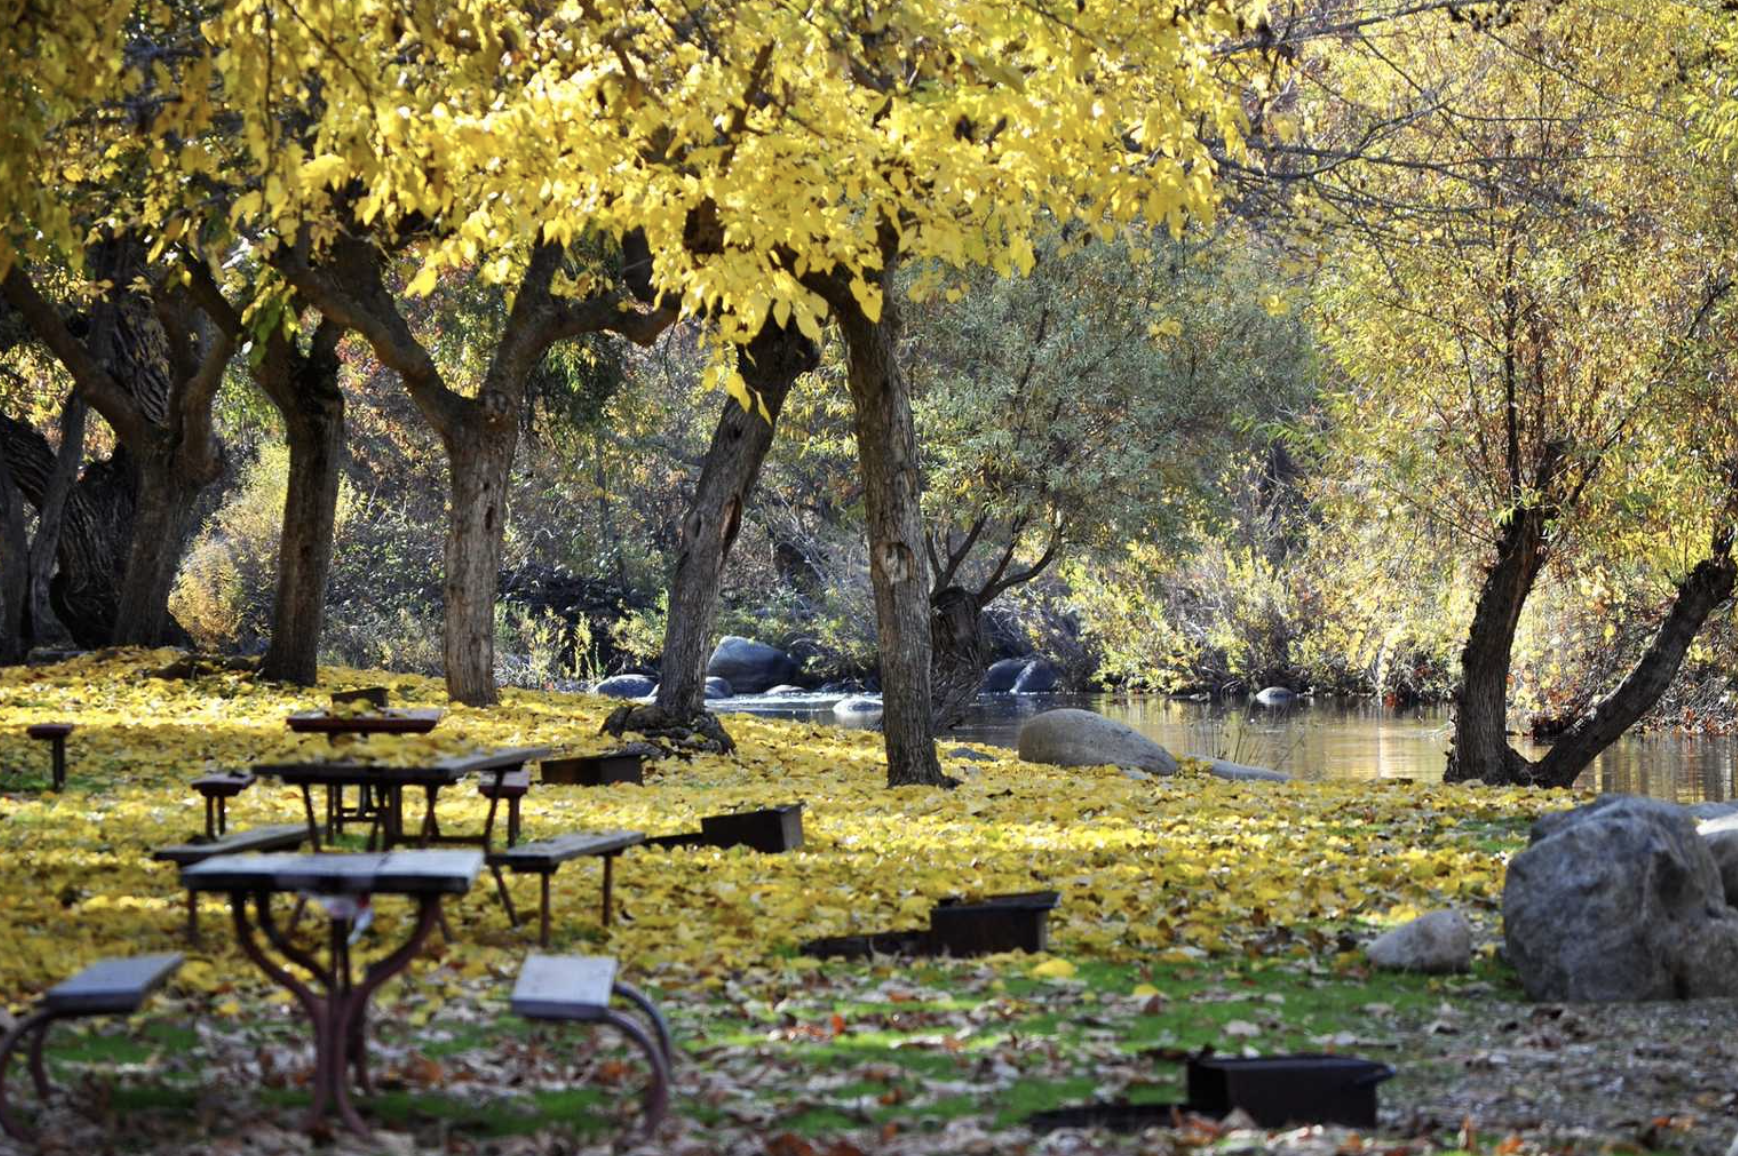 Picnic tables in woods with yellow leaves on the ground at campground.